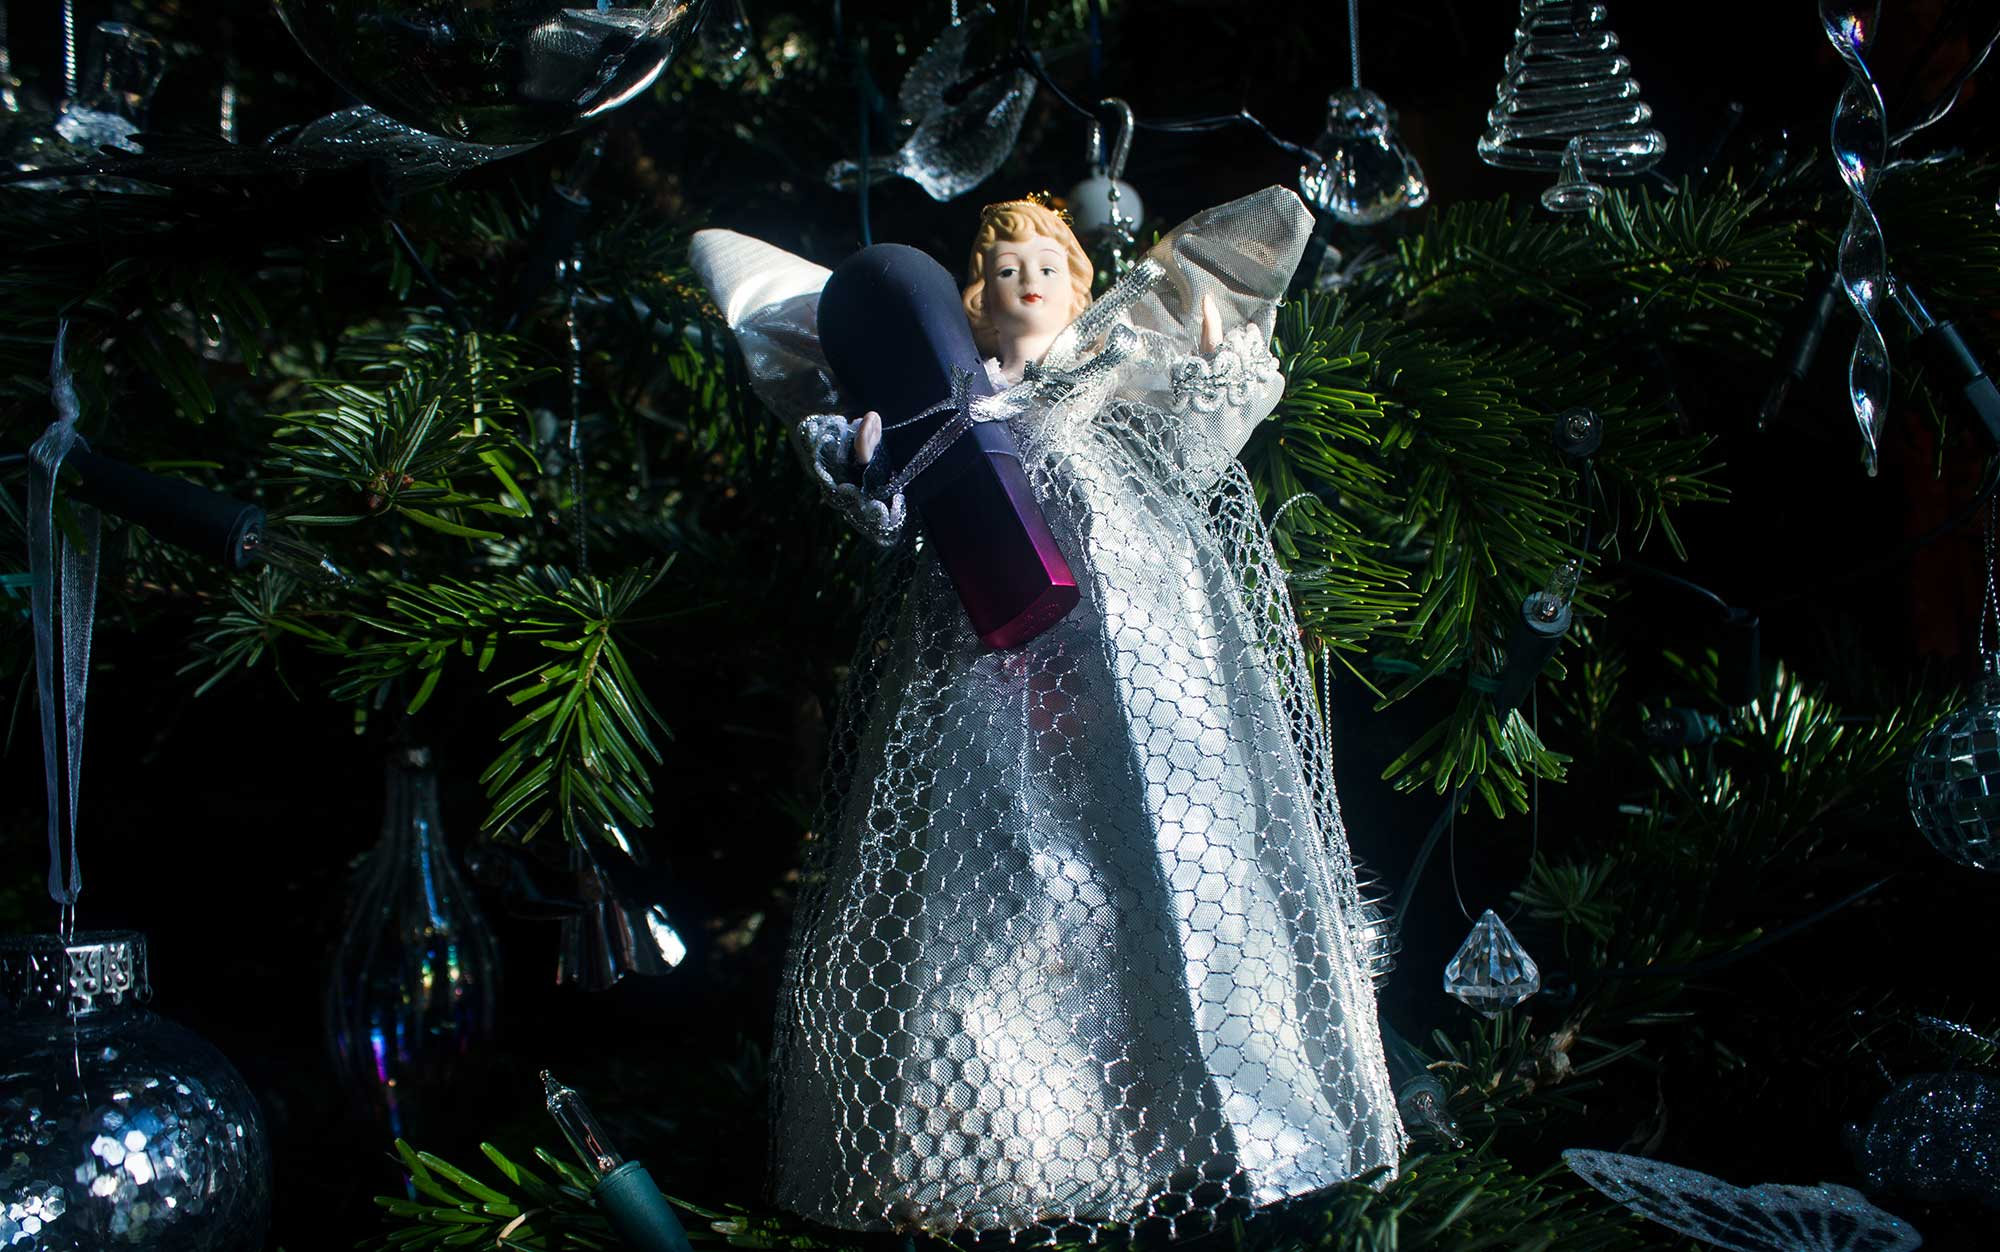 Angel in the Christmas tree clinging onto AMO